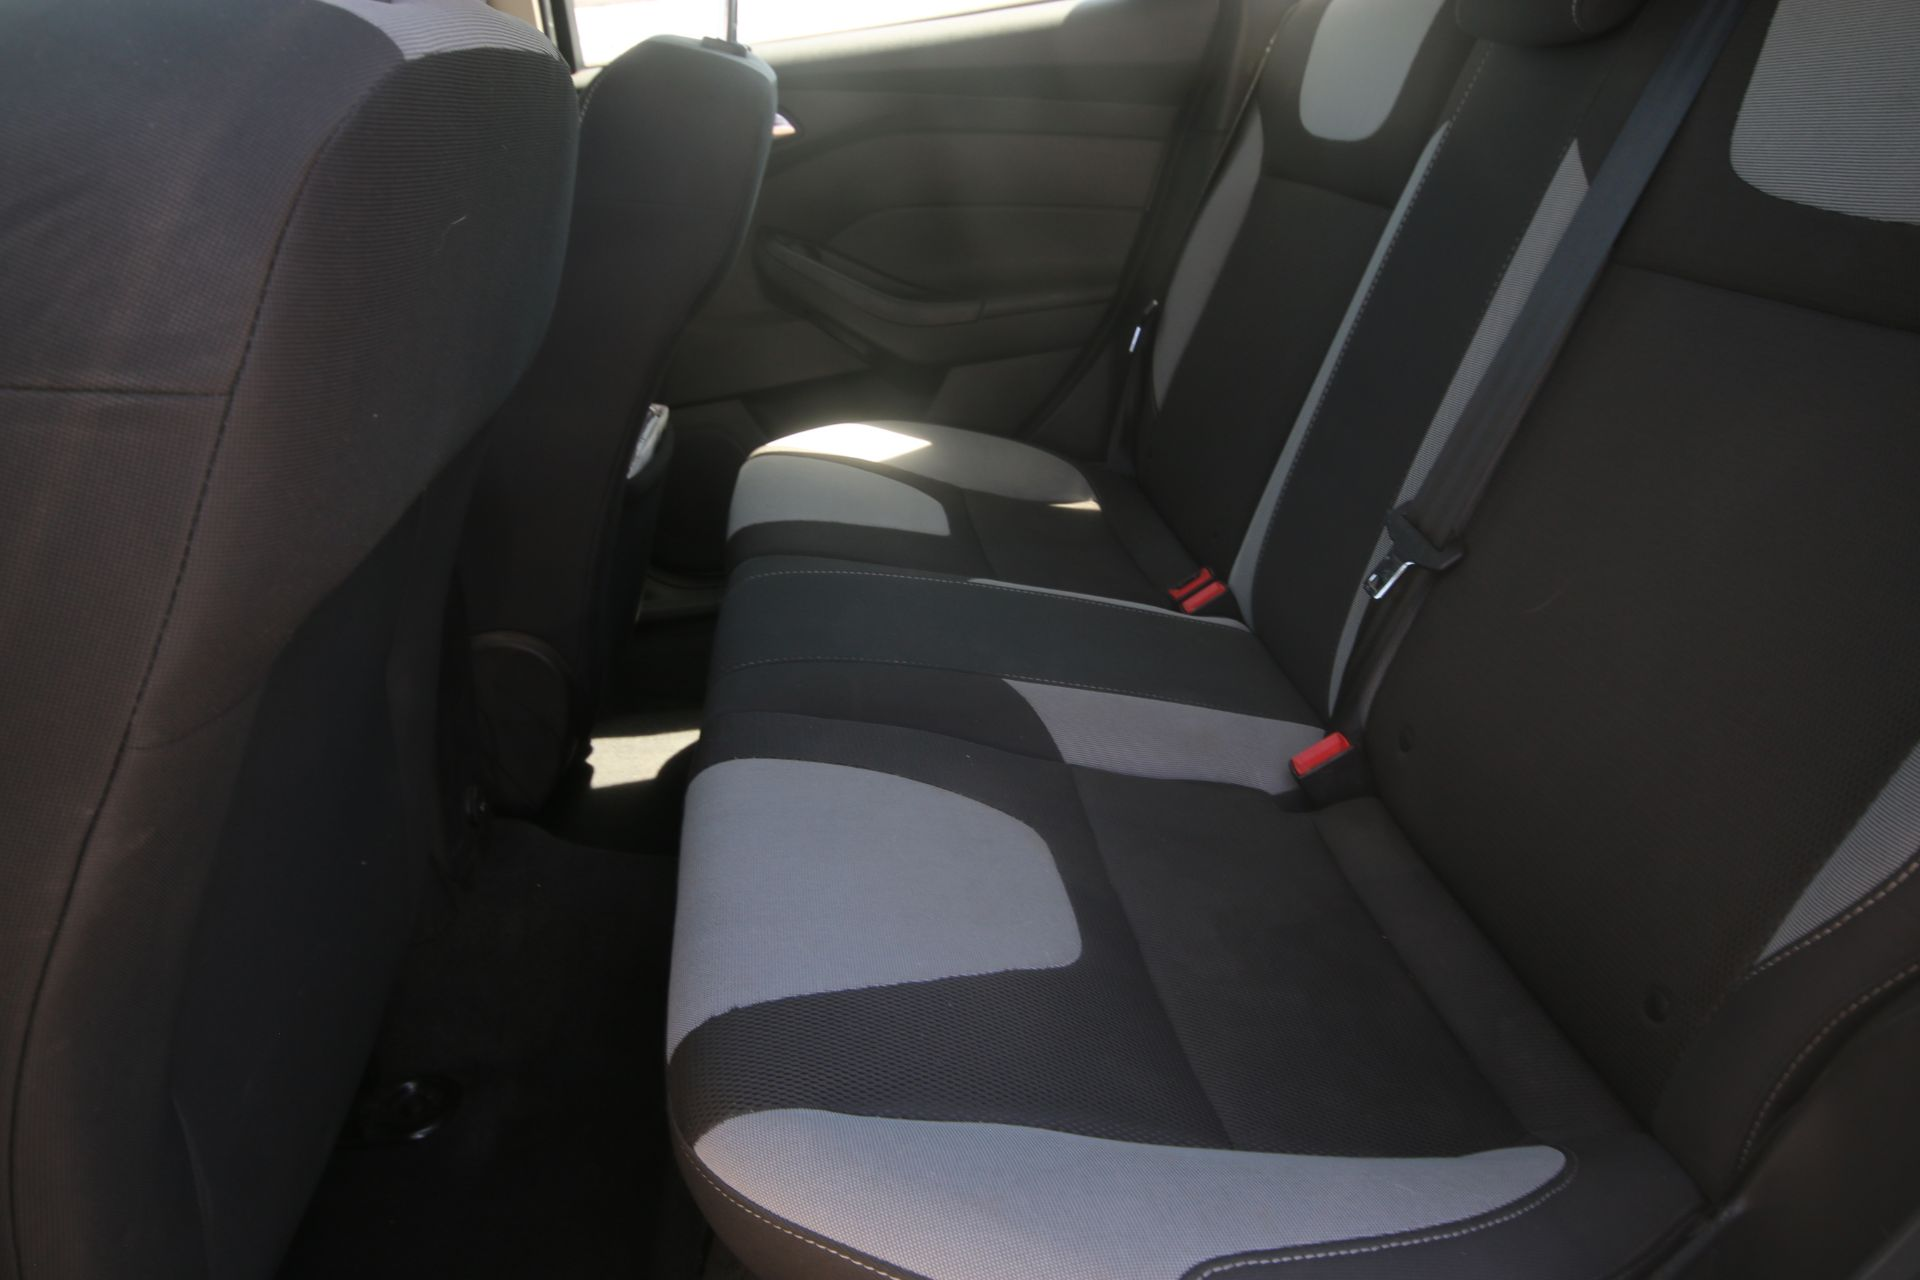 2012 White Ford Focus SE Hatchback 4D, VIN #: 1FAHP3K27CL423326, with 116,017 Miles, with 4-Doors, - Image 23 of 26